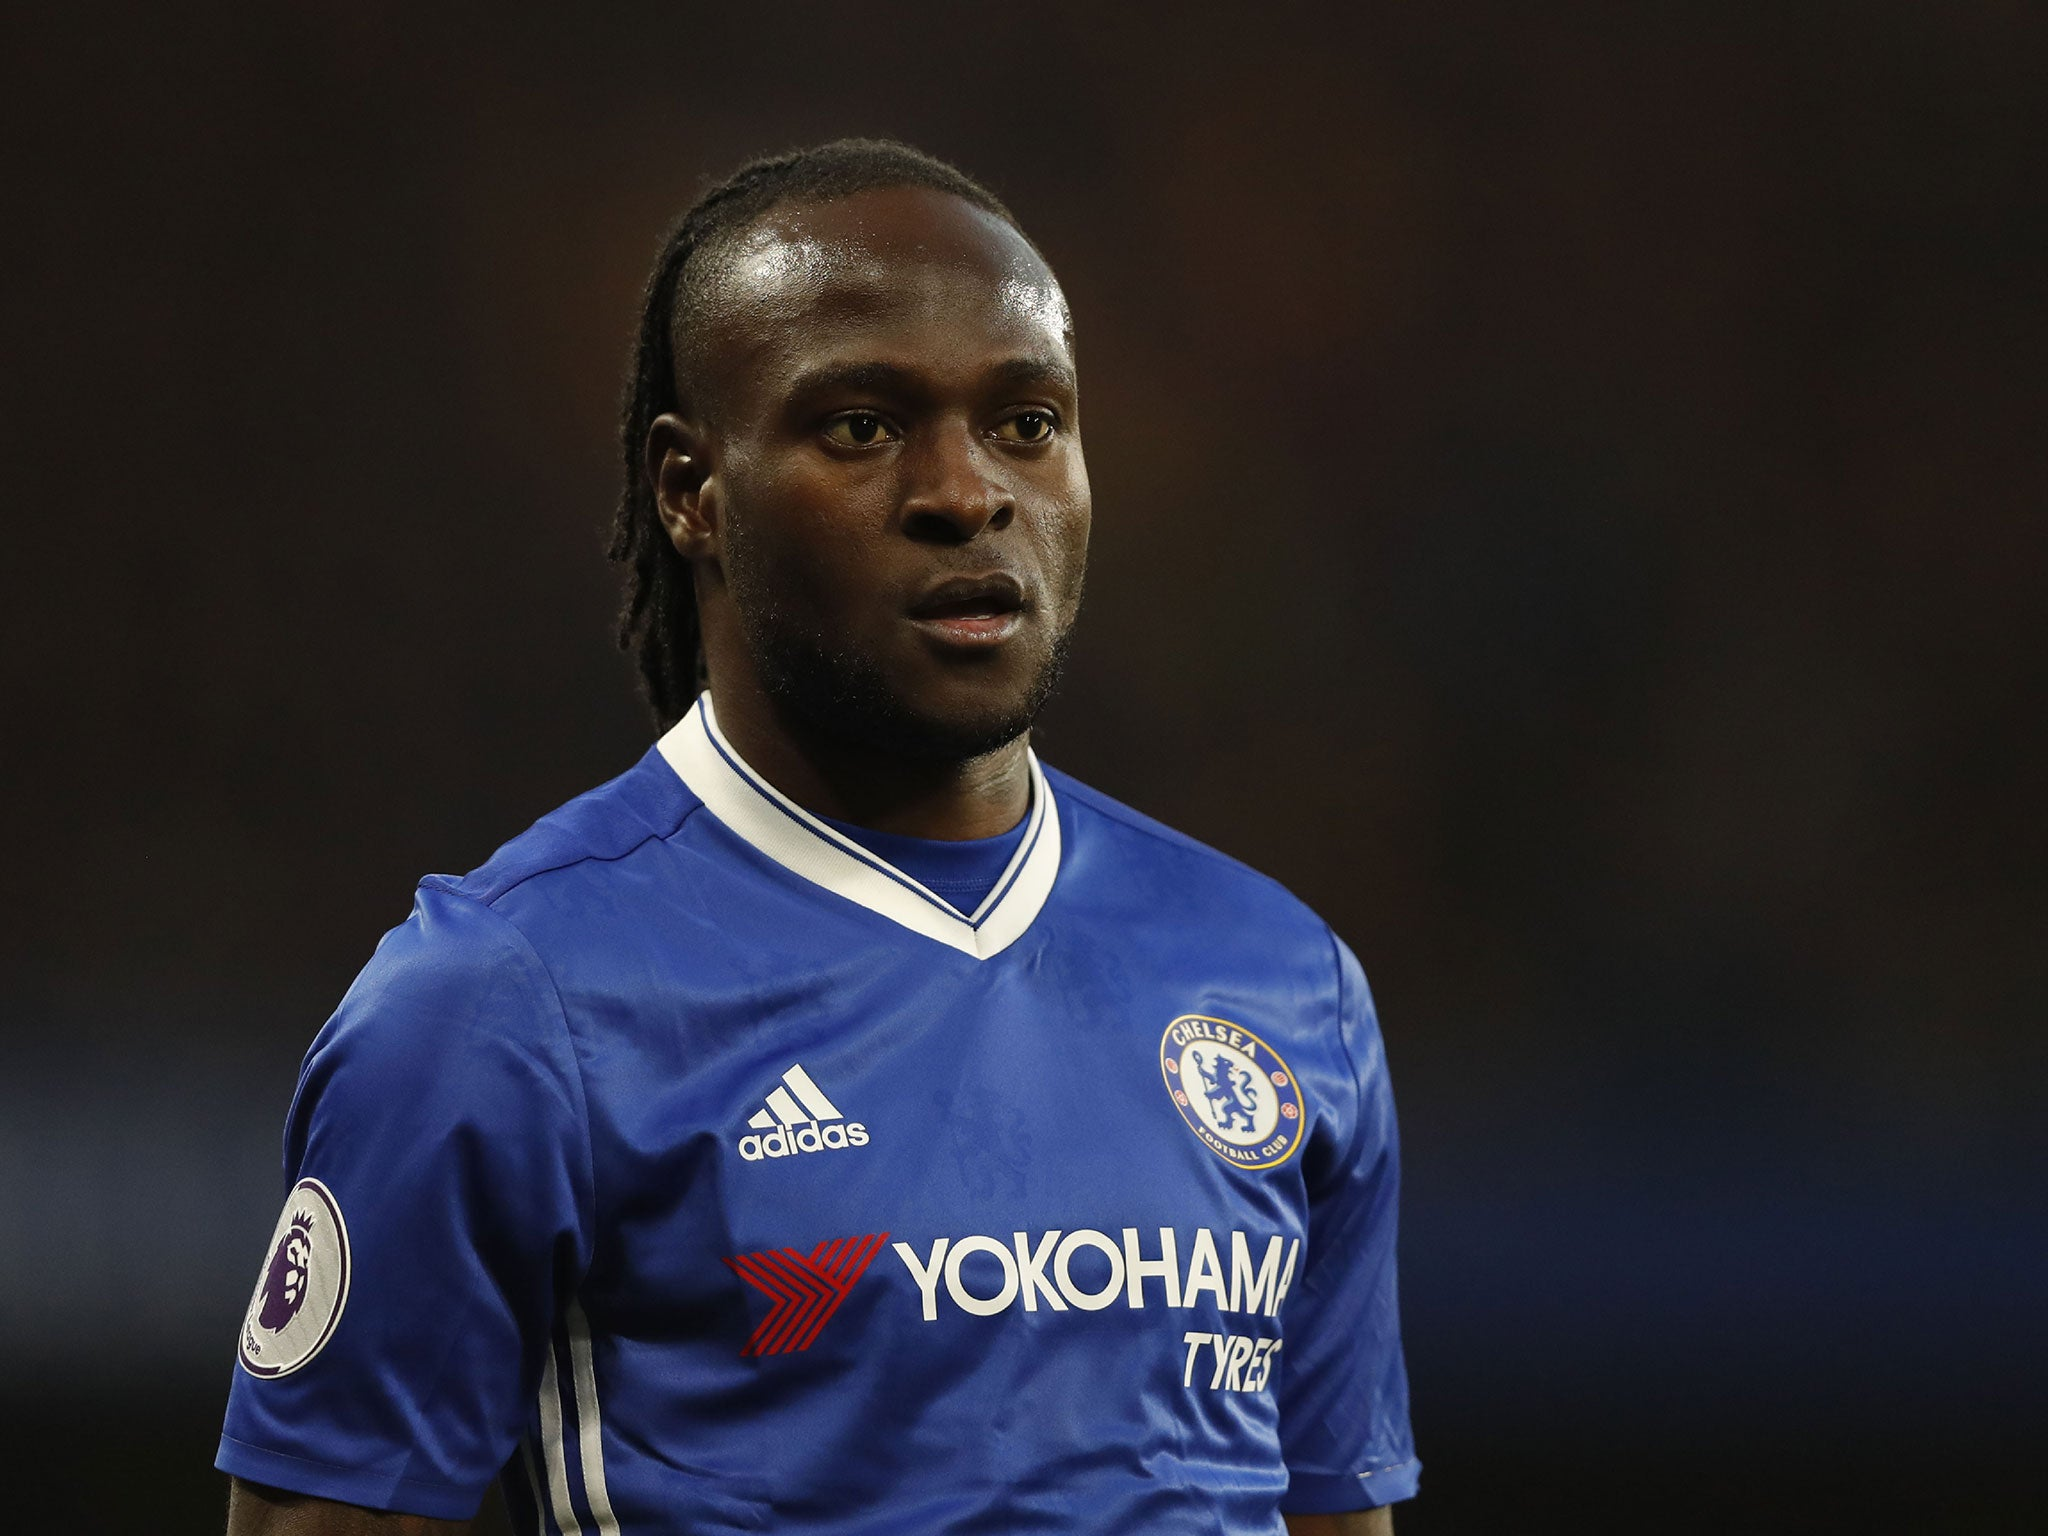 With Antonio Conte as his guide, Victor Moses has finally shown his worth to Chelsea after transformative season